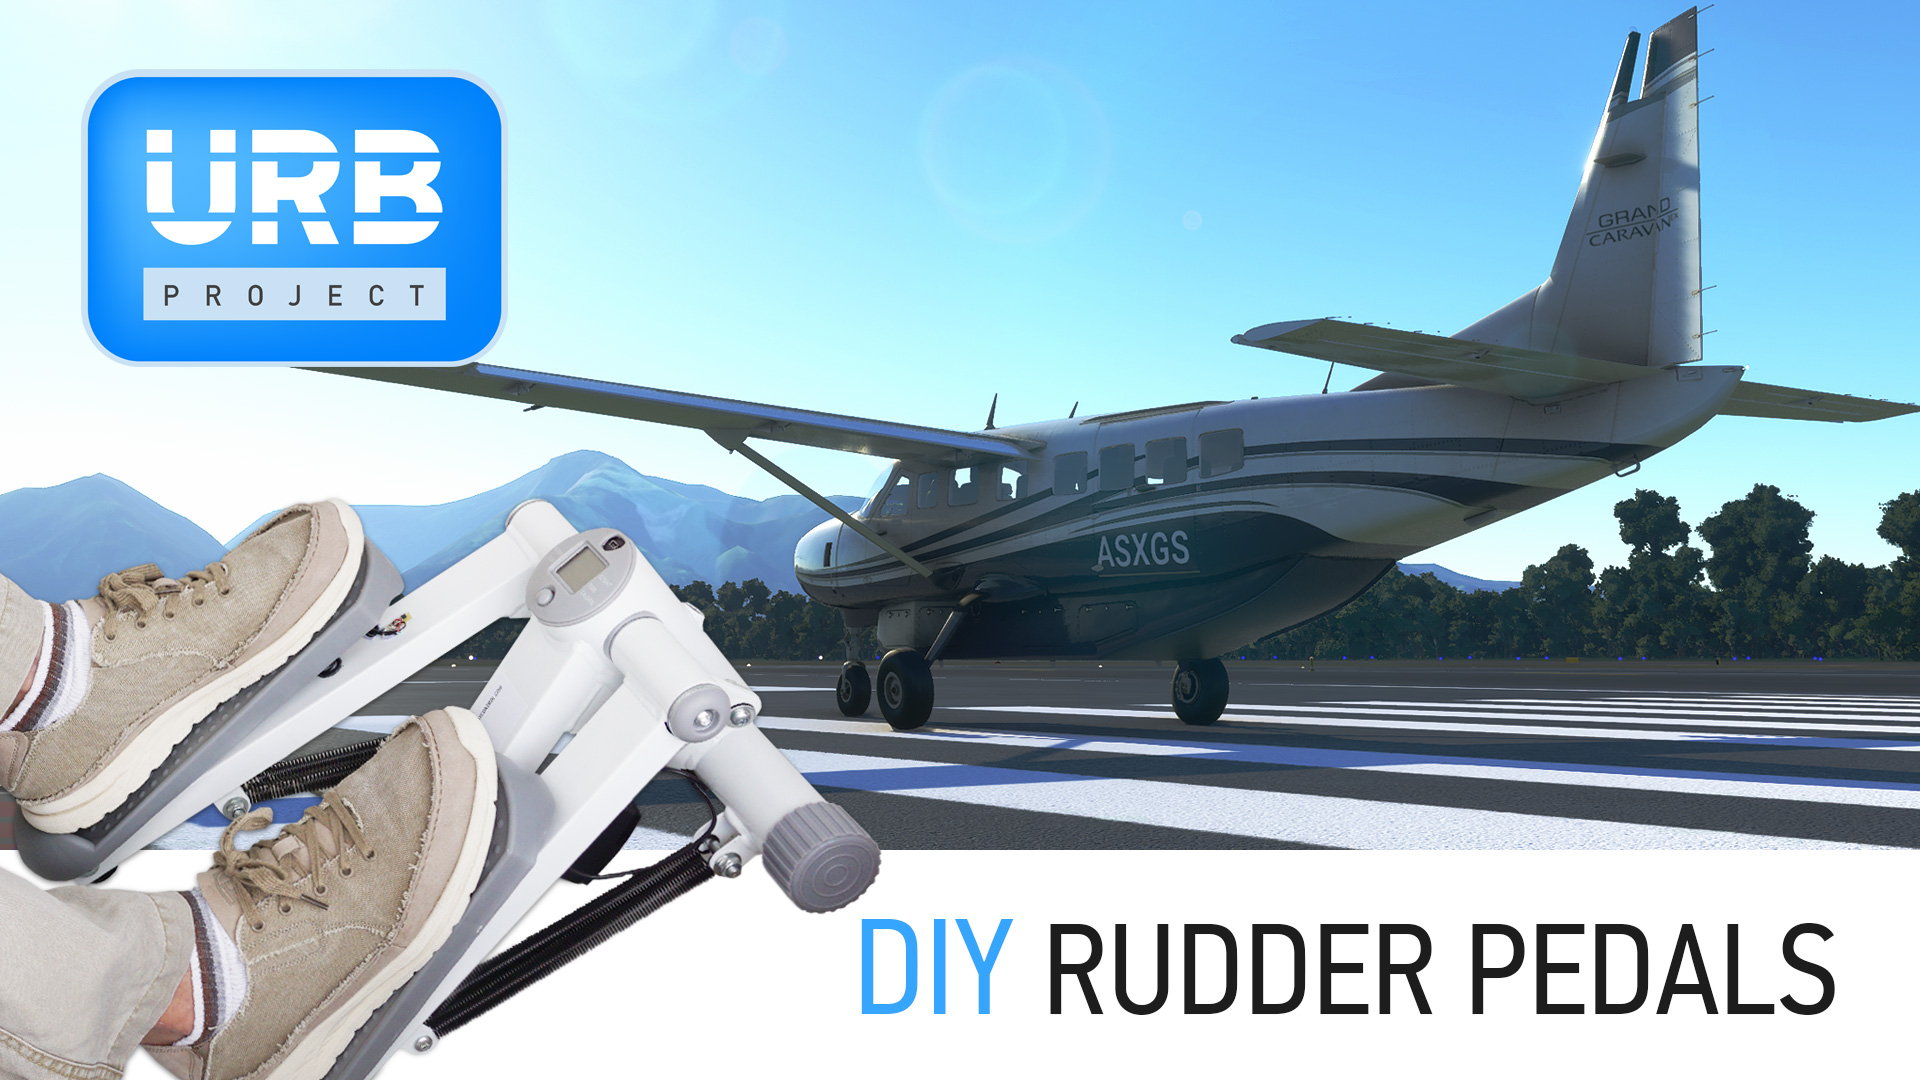 DIY Rudder Pedals for Flight Simulator